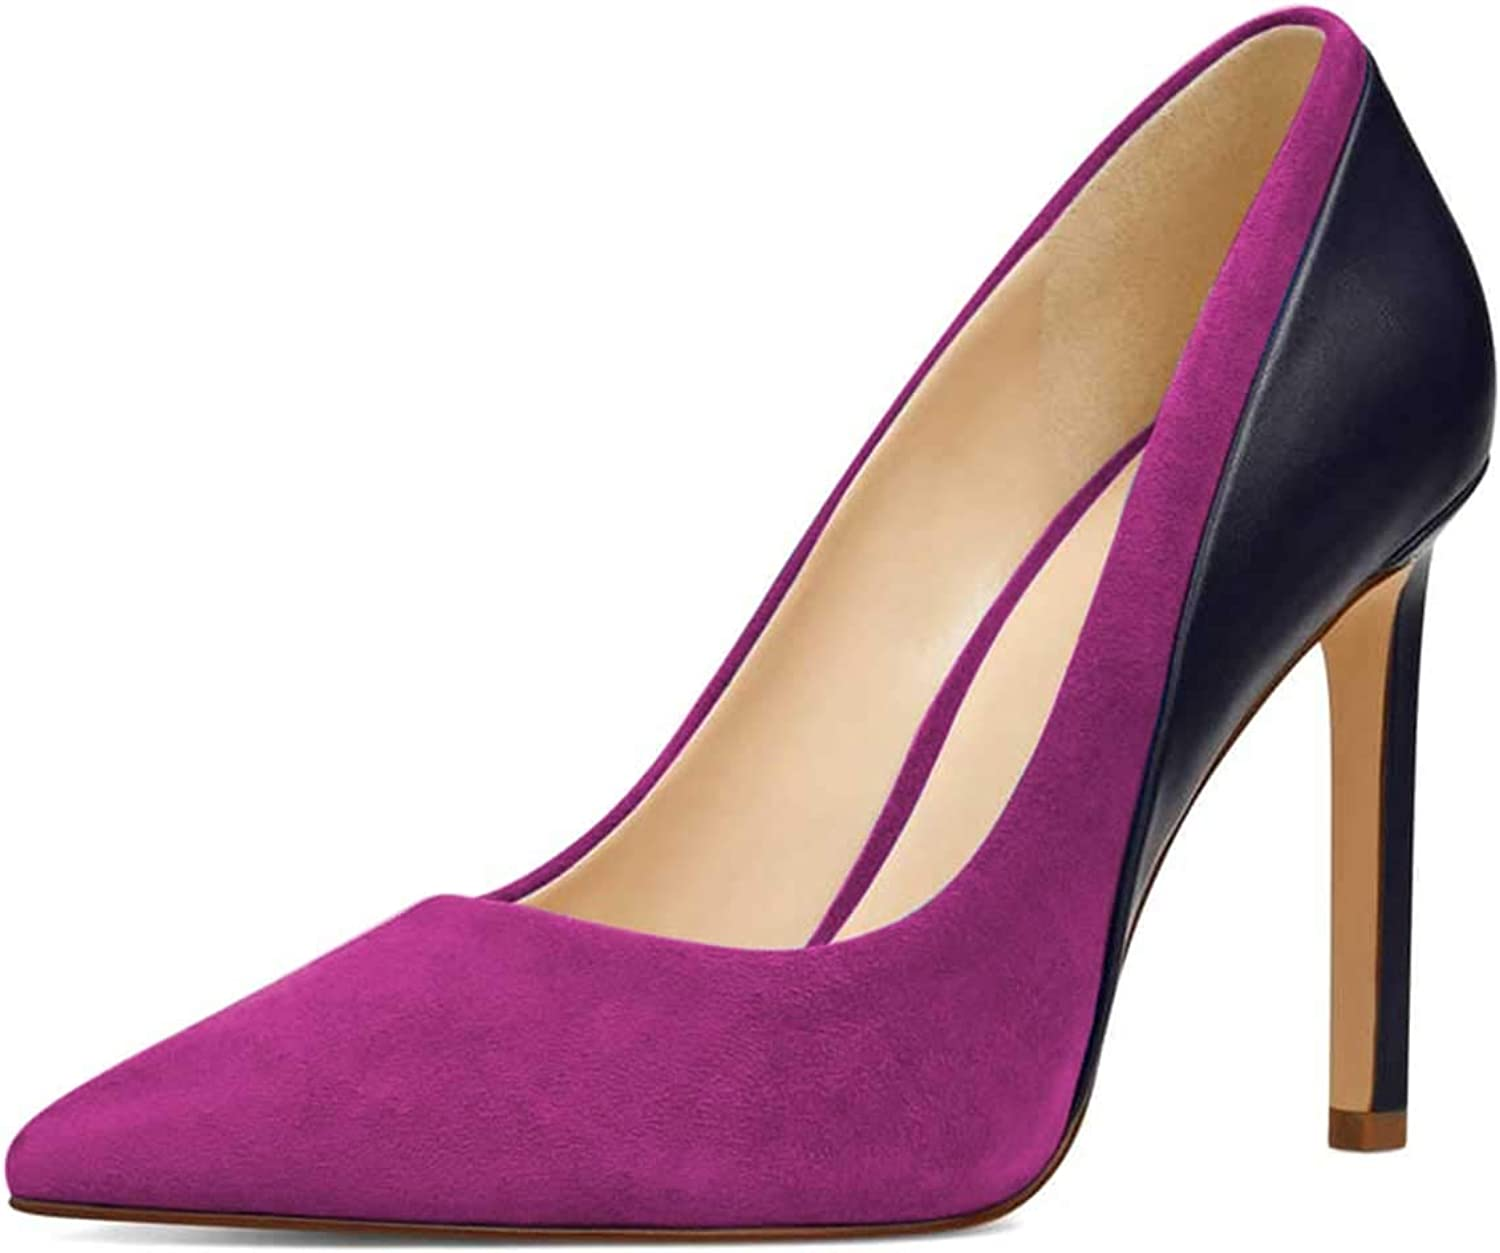 FSJ Women Formal Dress High Heels Pumps Pointy Toe Faux Suede Elegant Slip On Office shoes Size 4-15 US